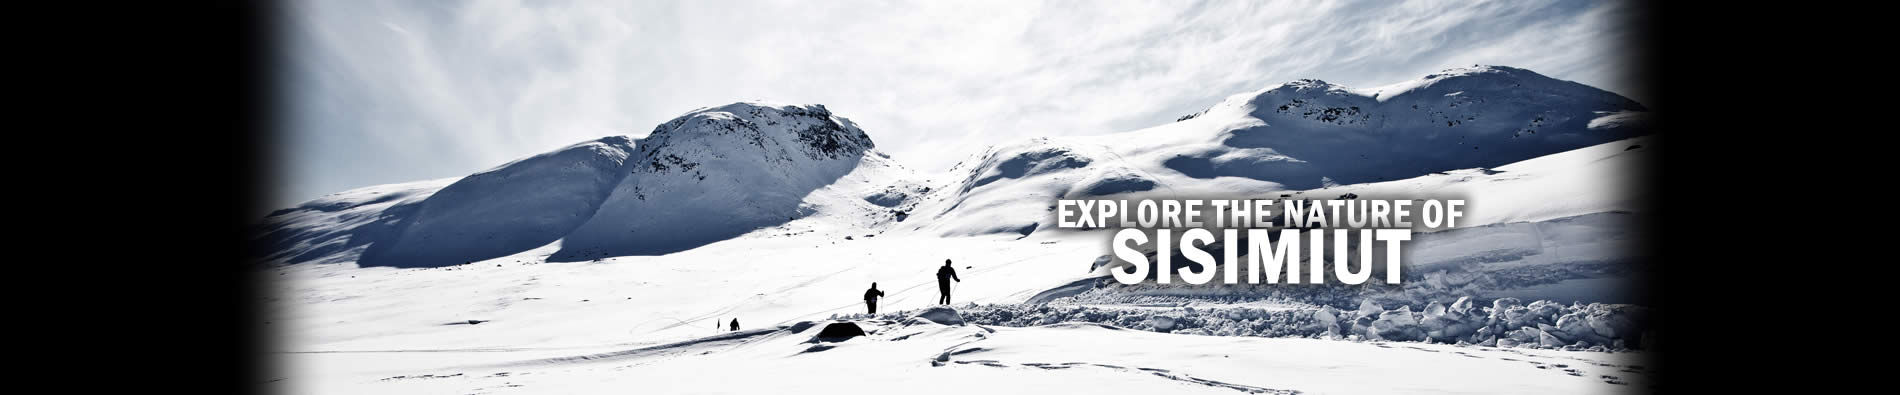 Explore the nature of Sisimiut